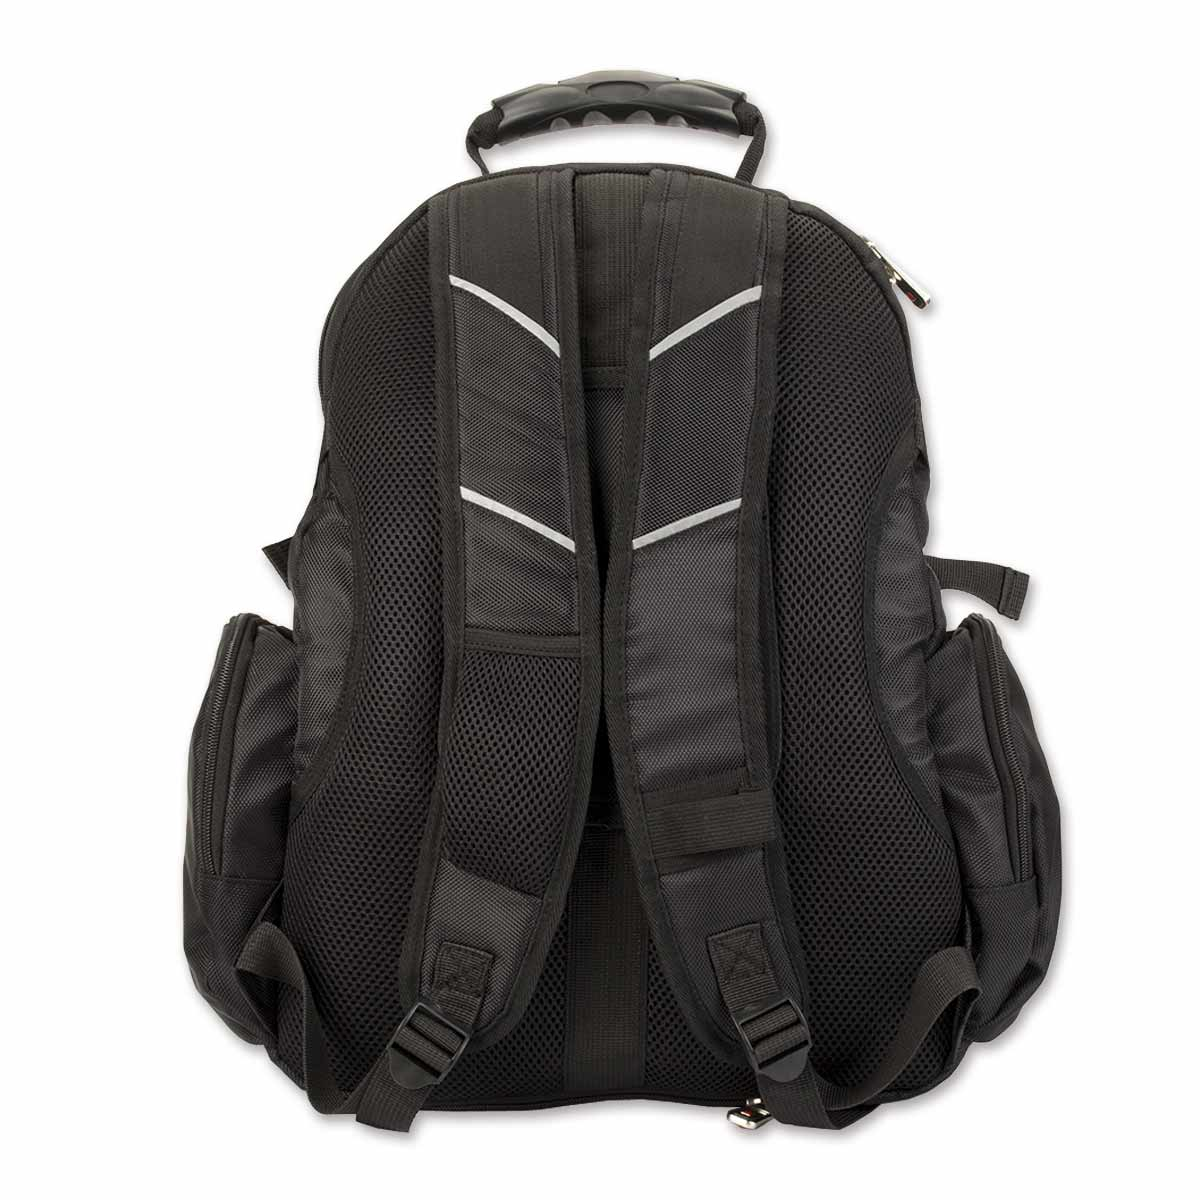 Premium promotion Backpack – 2016-01 (approx. 30 x 50 x 30 cm, black)